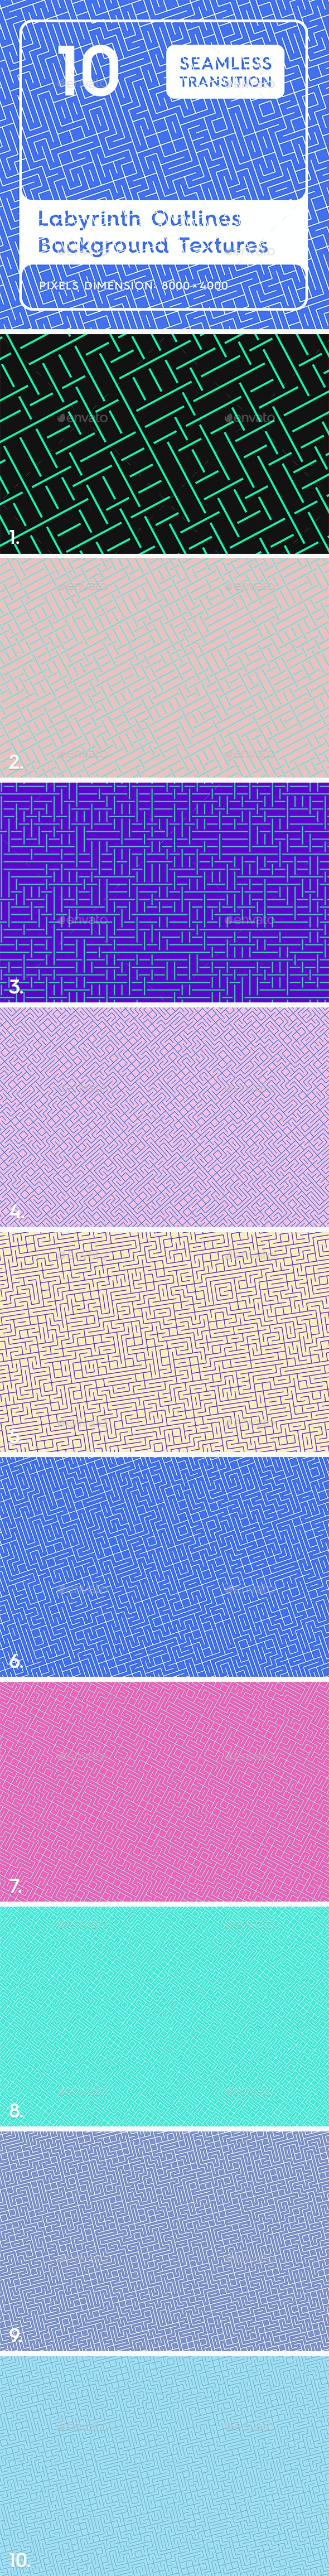 10 Labyrinth Outlines Backgrounds - Patterns Backgrounds